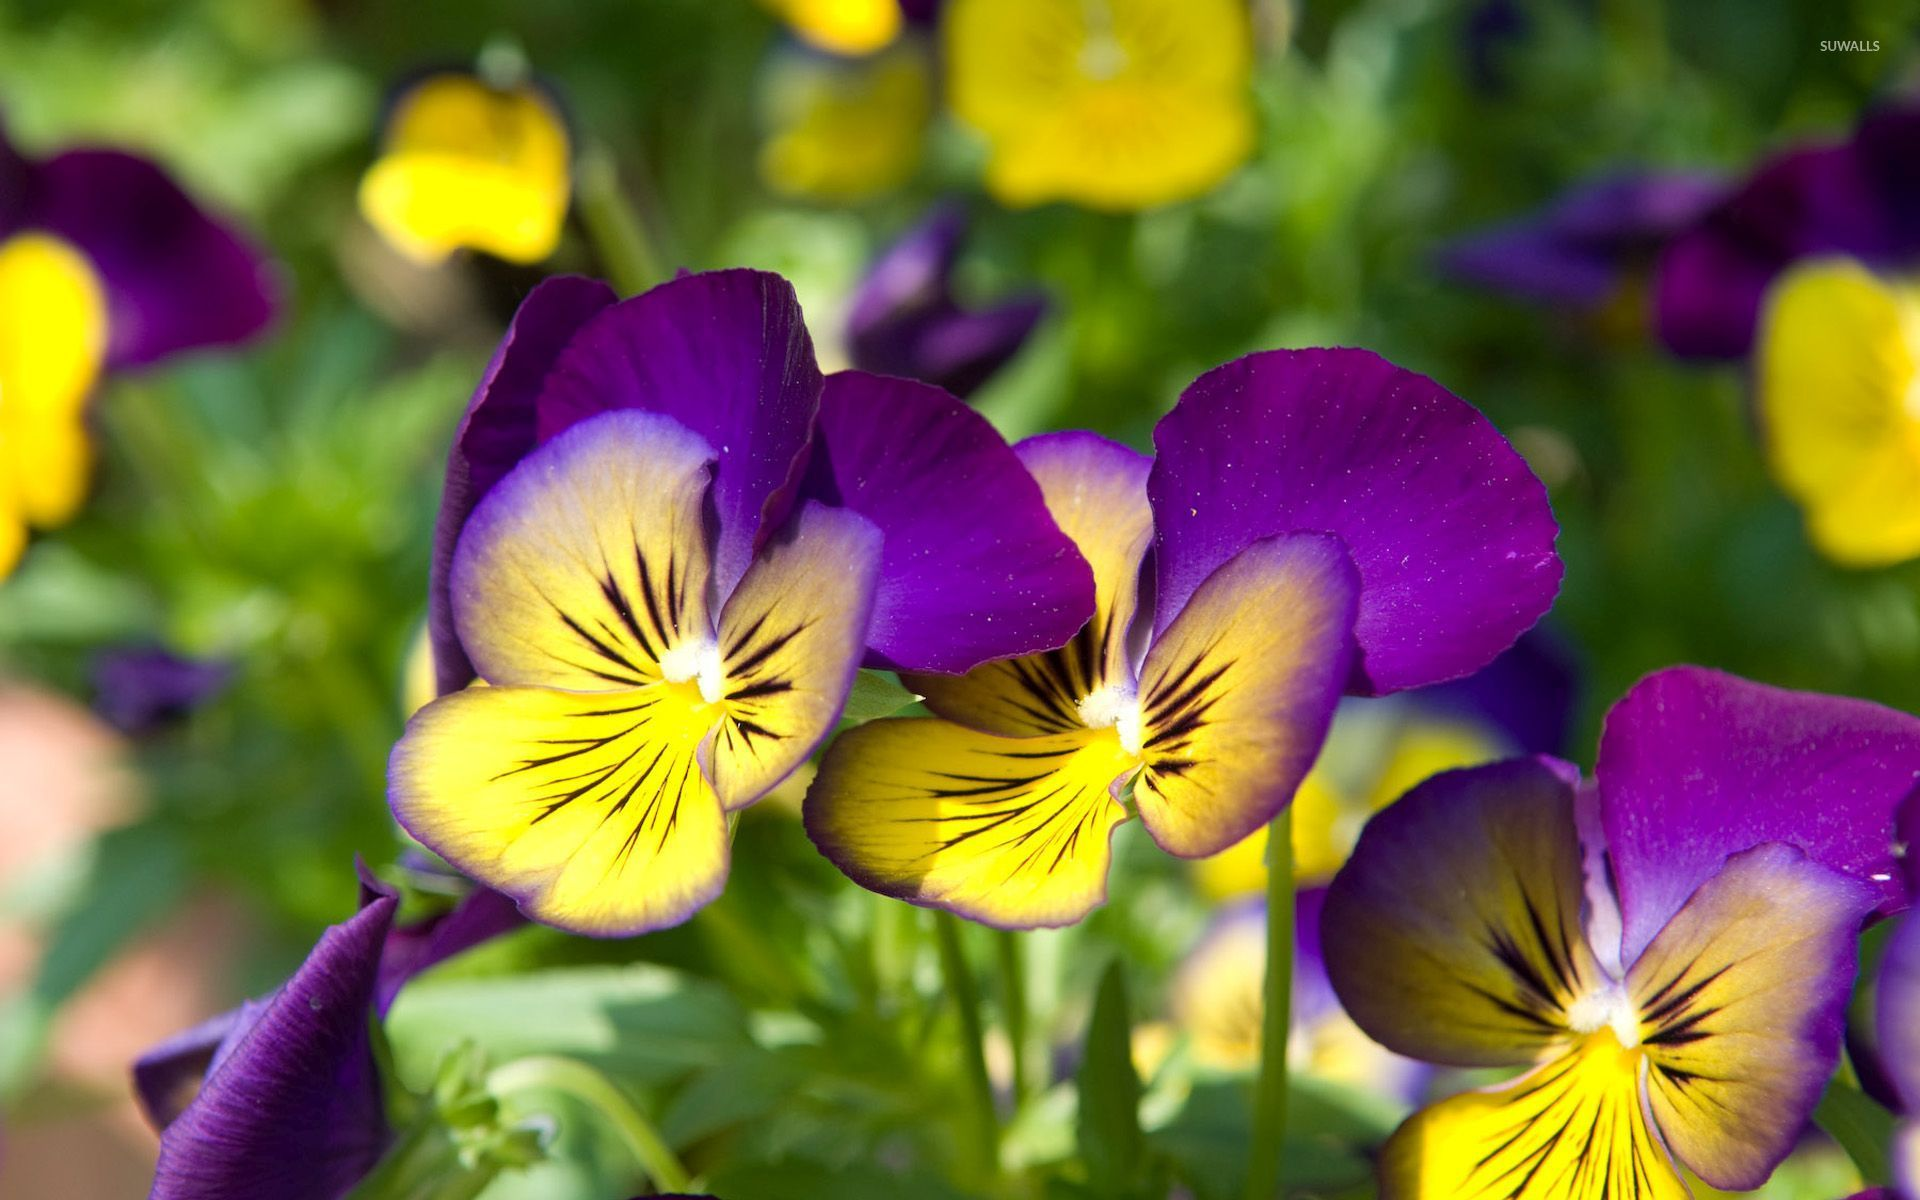 Fruit Quotes Wallpaper Pretty Pansies Wallpaper Flower Wallpapers 54105